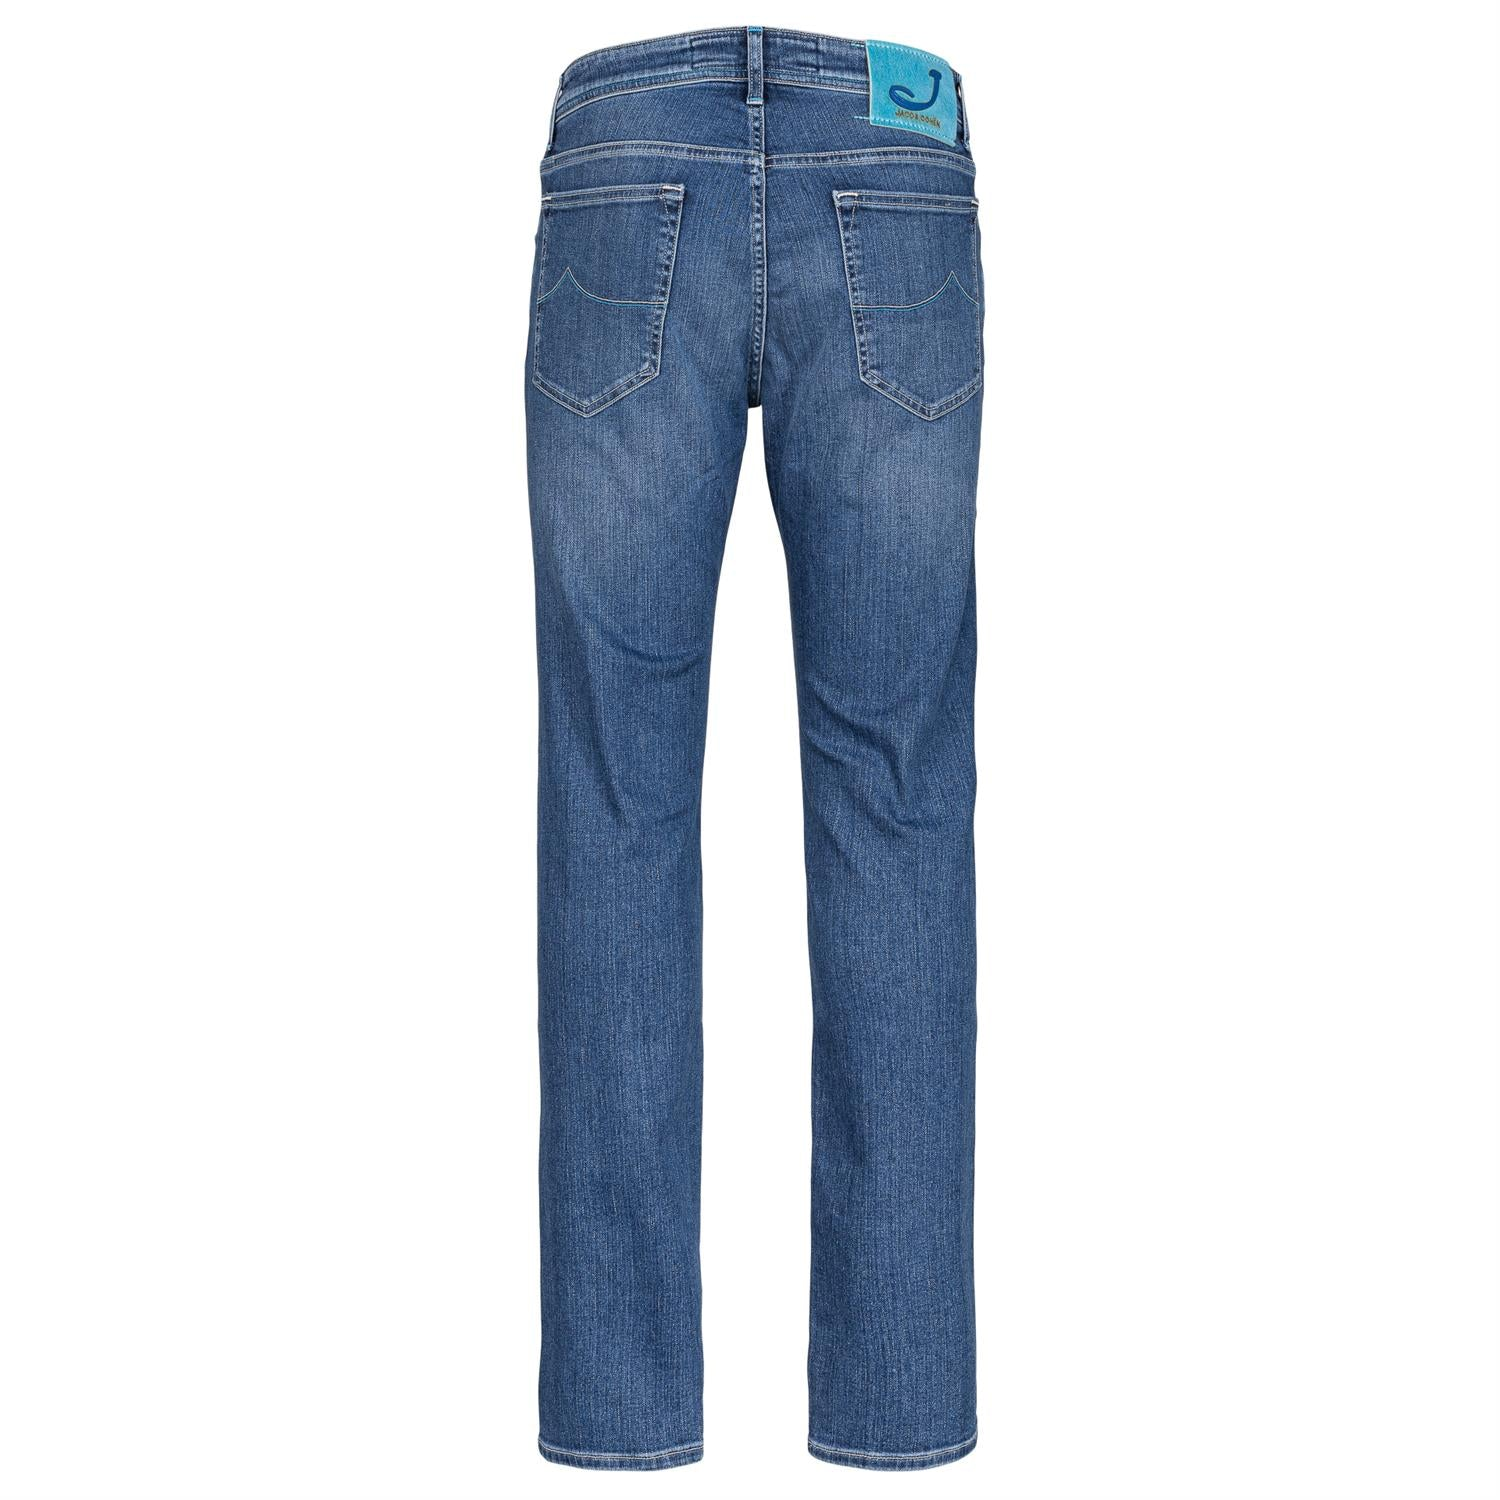 JACOB COHEN J688 JEANS-JACOB COHEN-www.gunnaroye.no